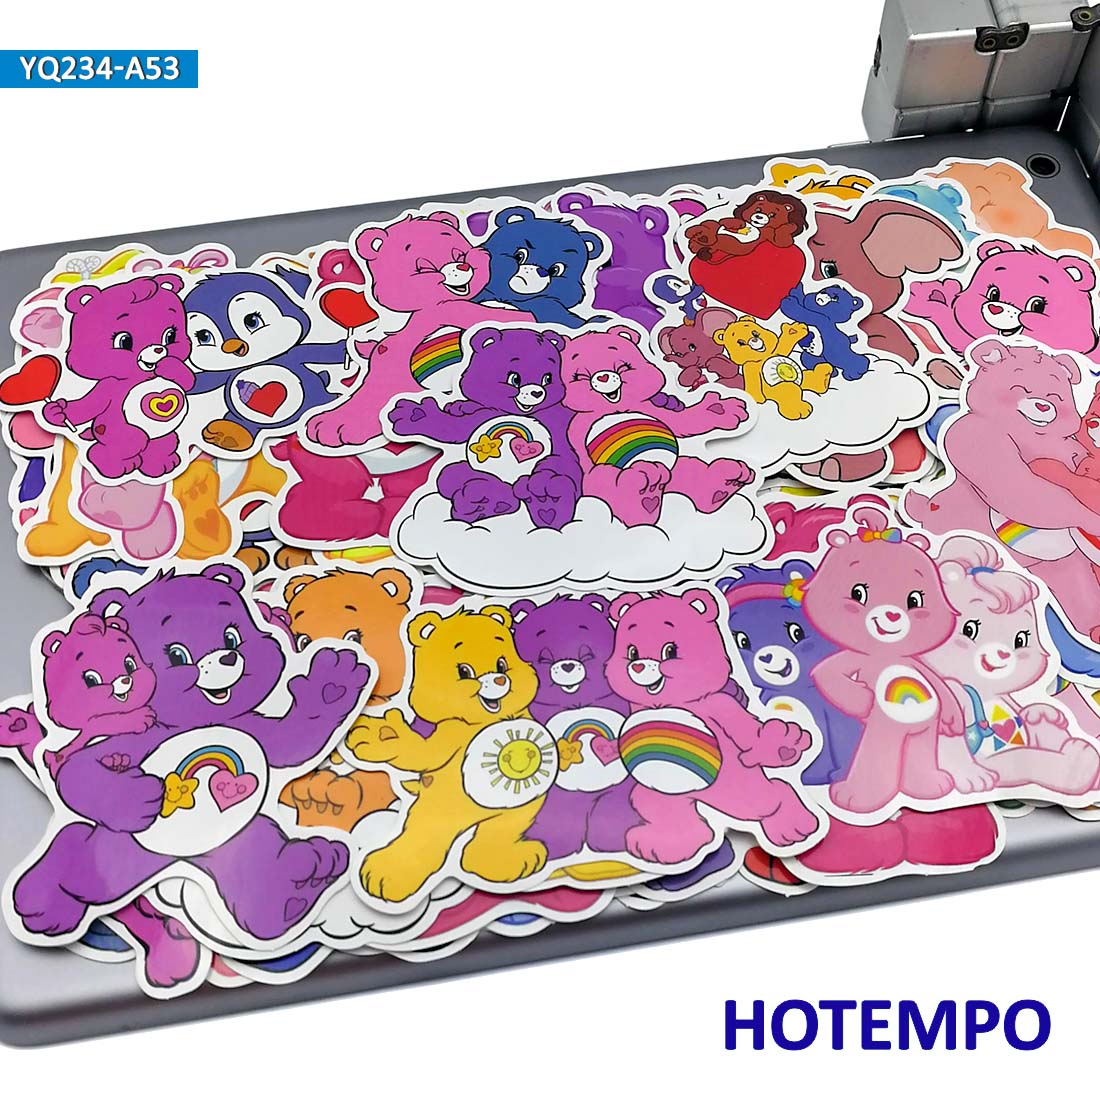 50pcs Cartoon Rainbow Bear Stickers For Kid DIY Mobile Phone Laptop Luggage Suitcase Guitar Skateboard Bike Case PVC Waterproof